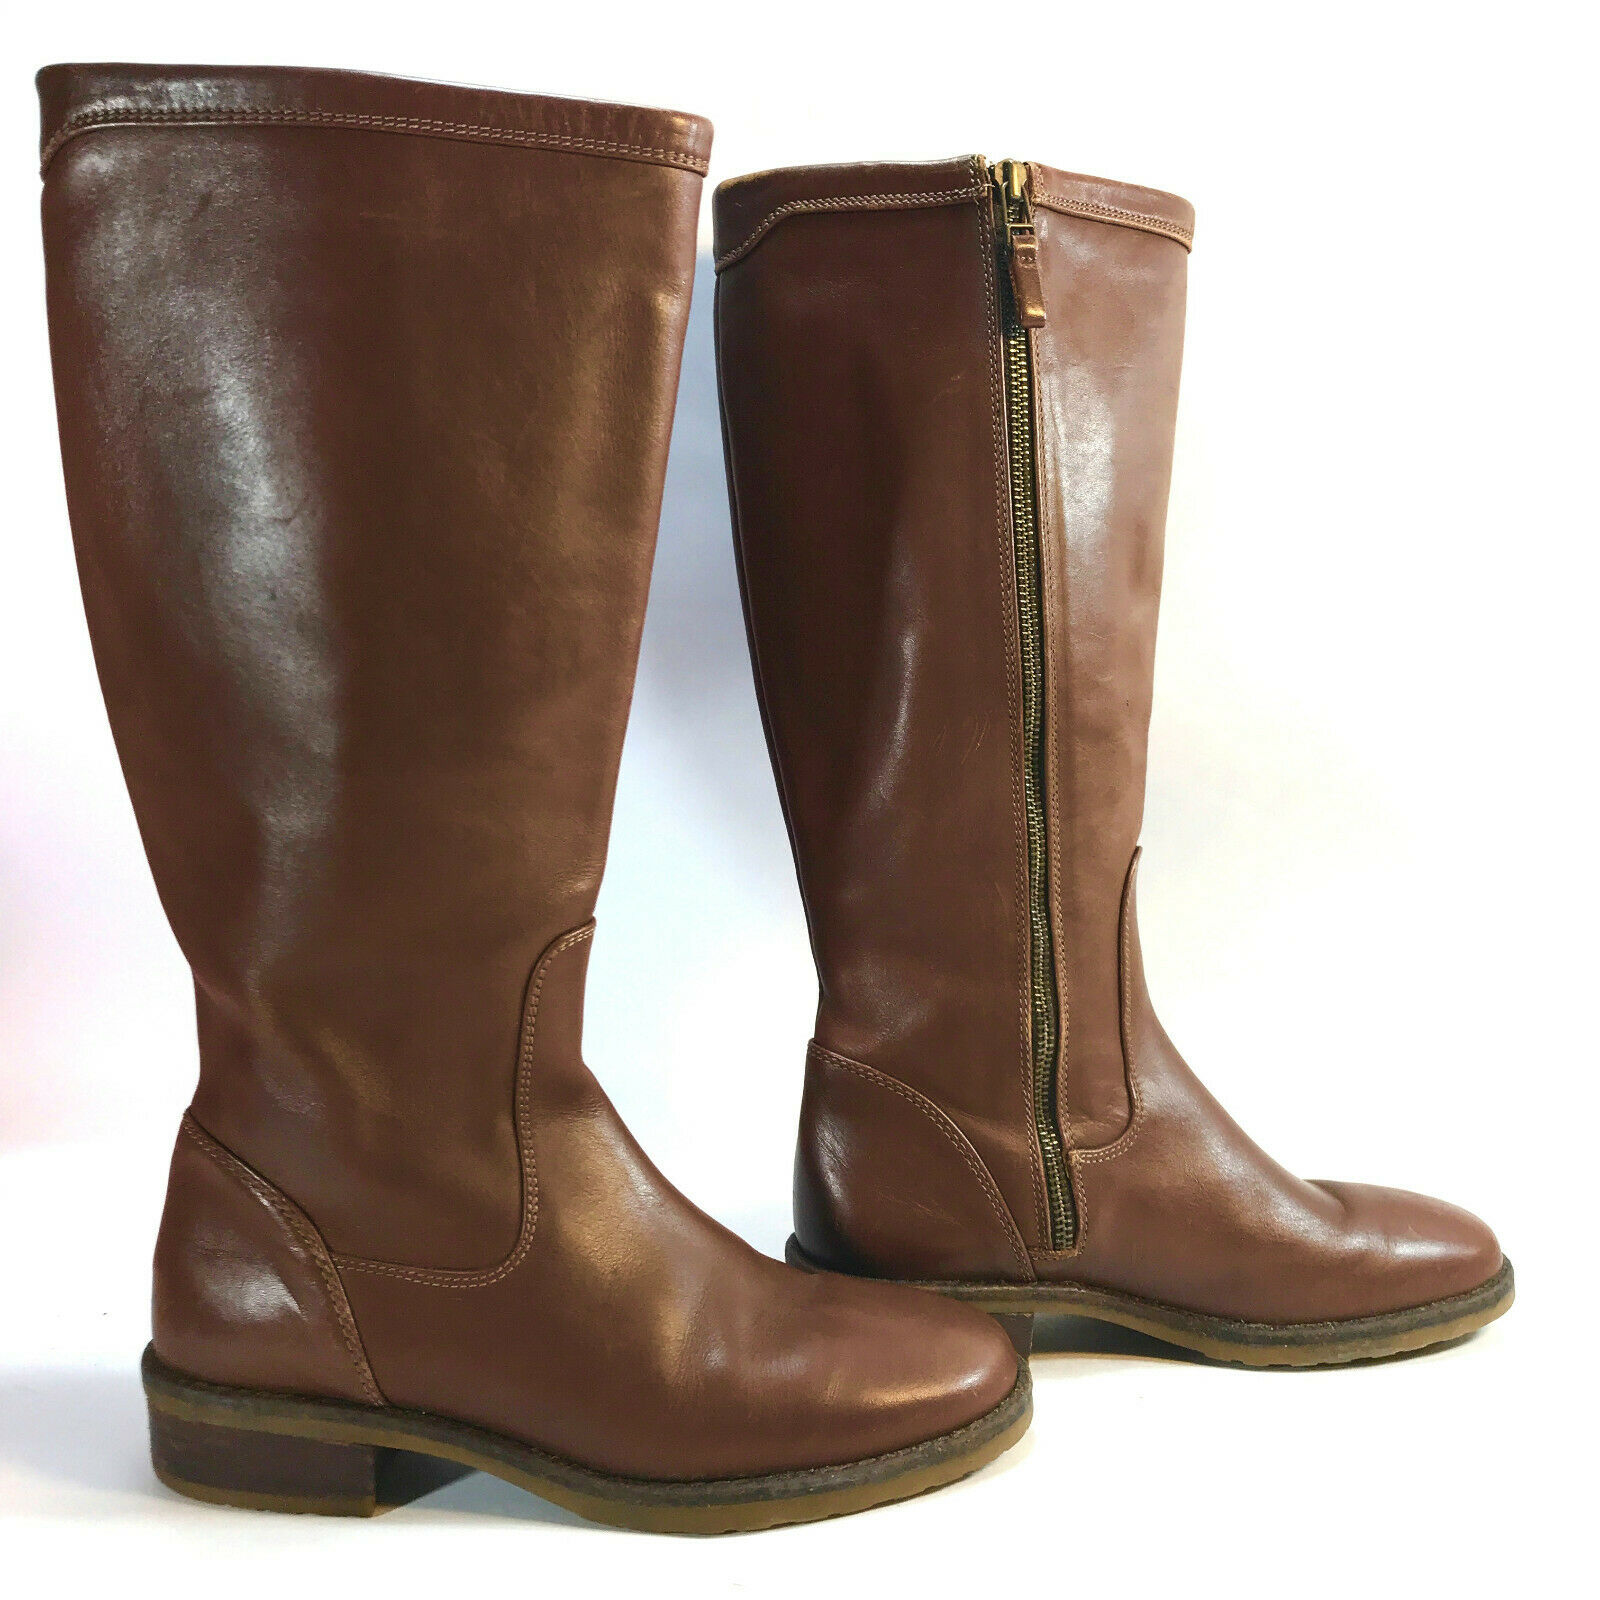 LL BEAN side zip sleek thick brown leather glossy knee hi boots 7 FREE SHIP